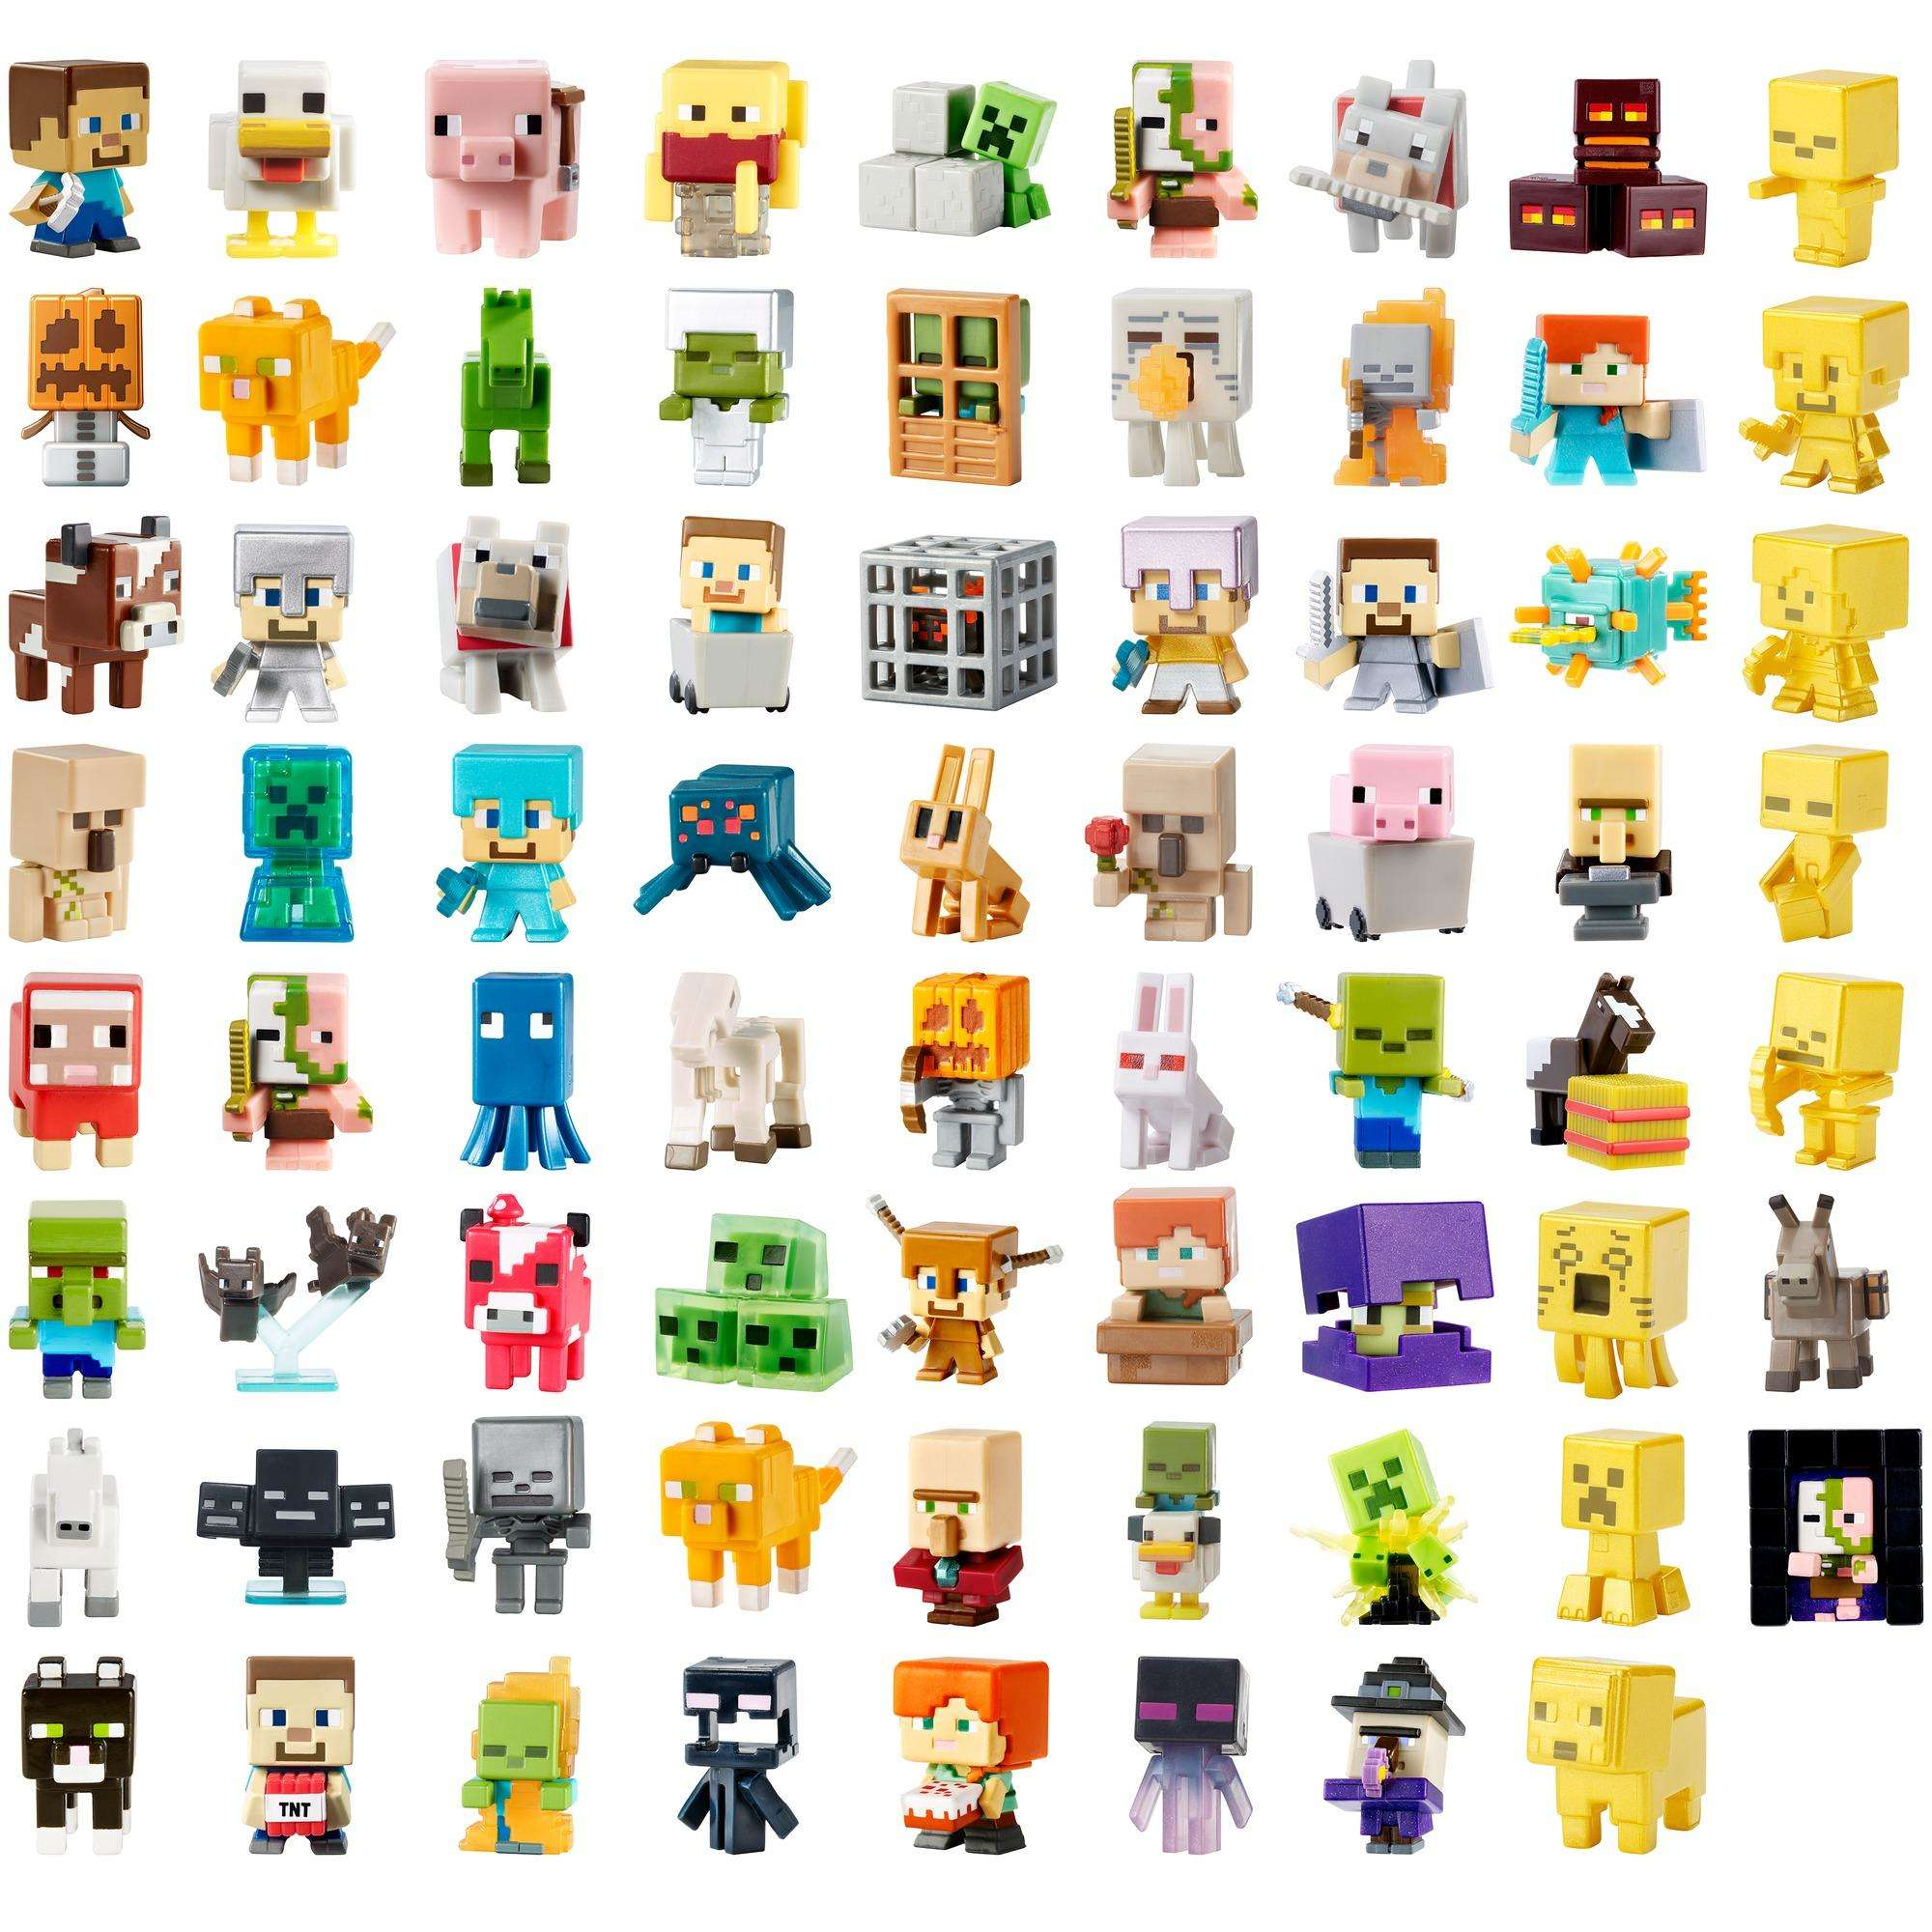 Minecraft Chest Series 4 Blind Box Mini Figure NEW Toys Collectibles 1 Figure